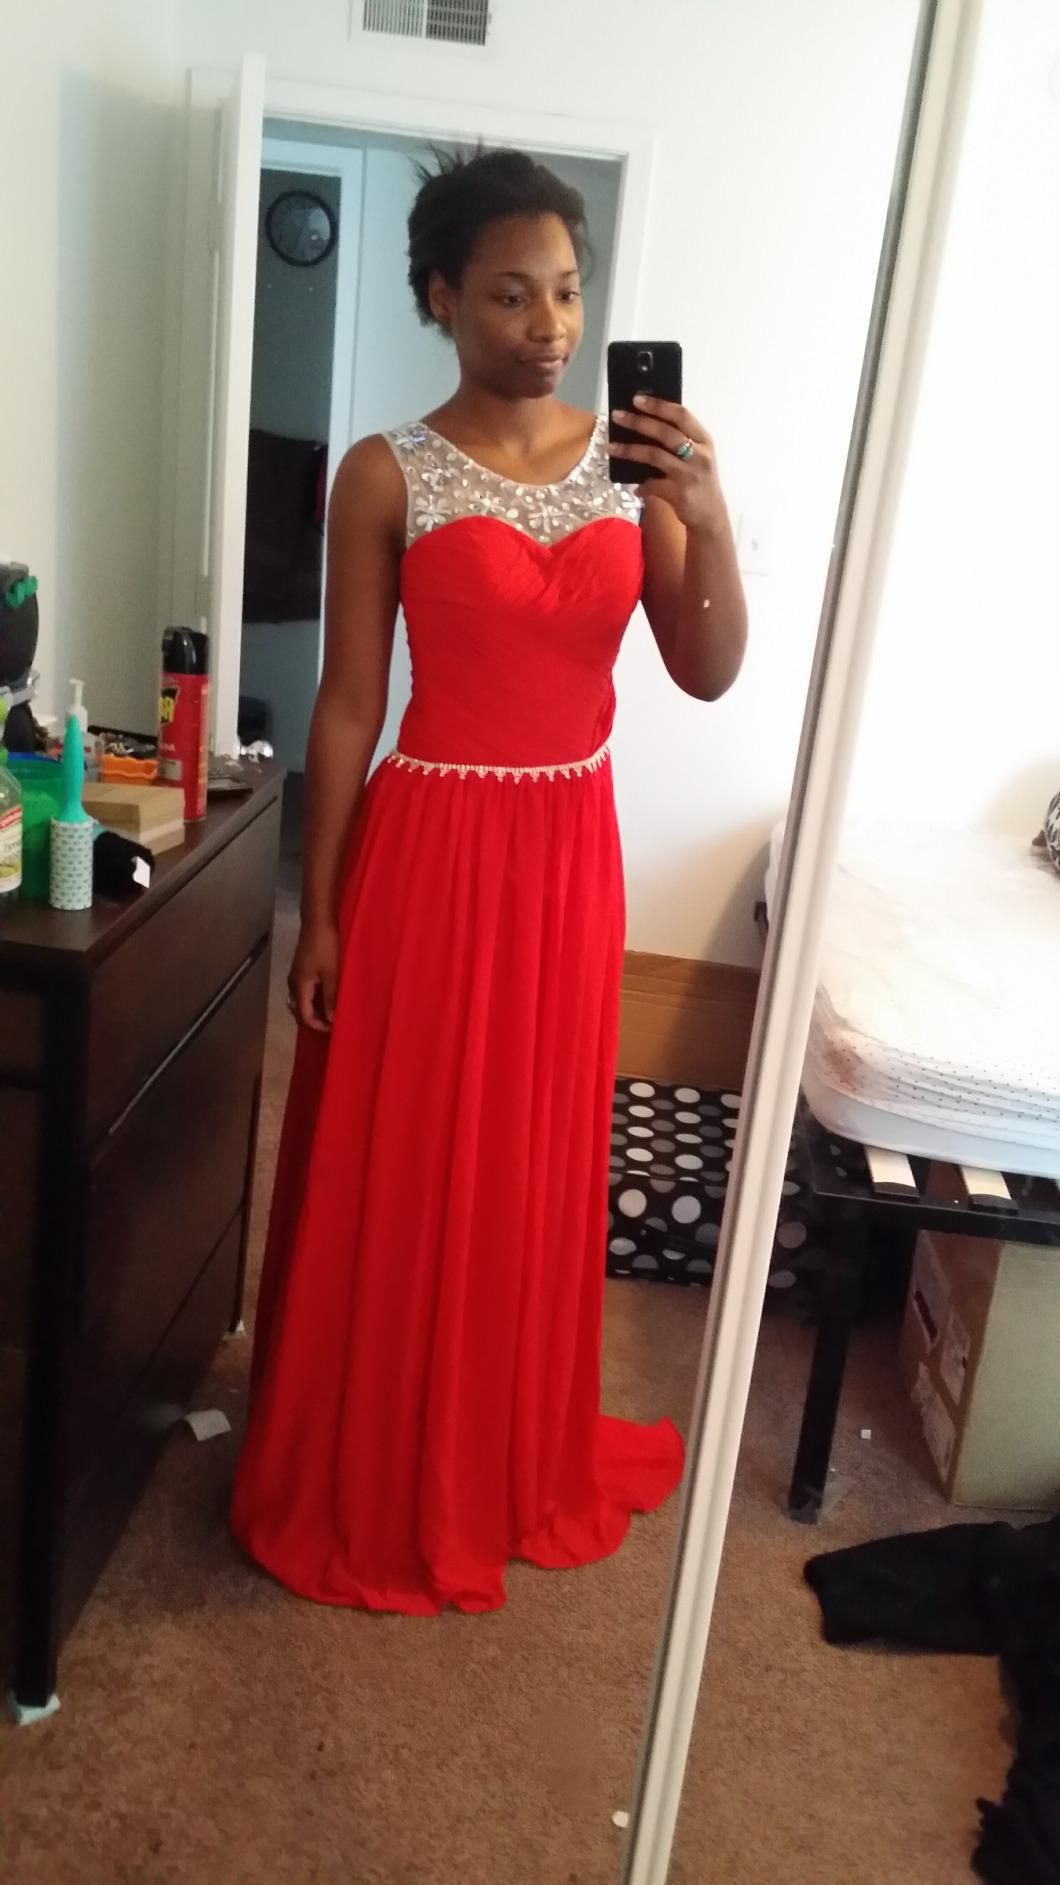 Pin by belleza pura on vestidos pinterest red chiffon prom and